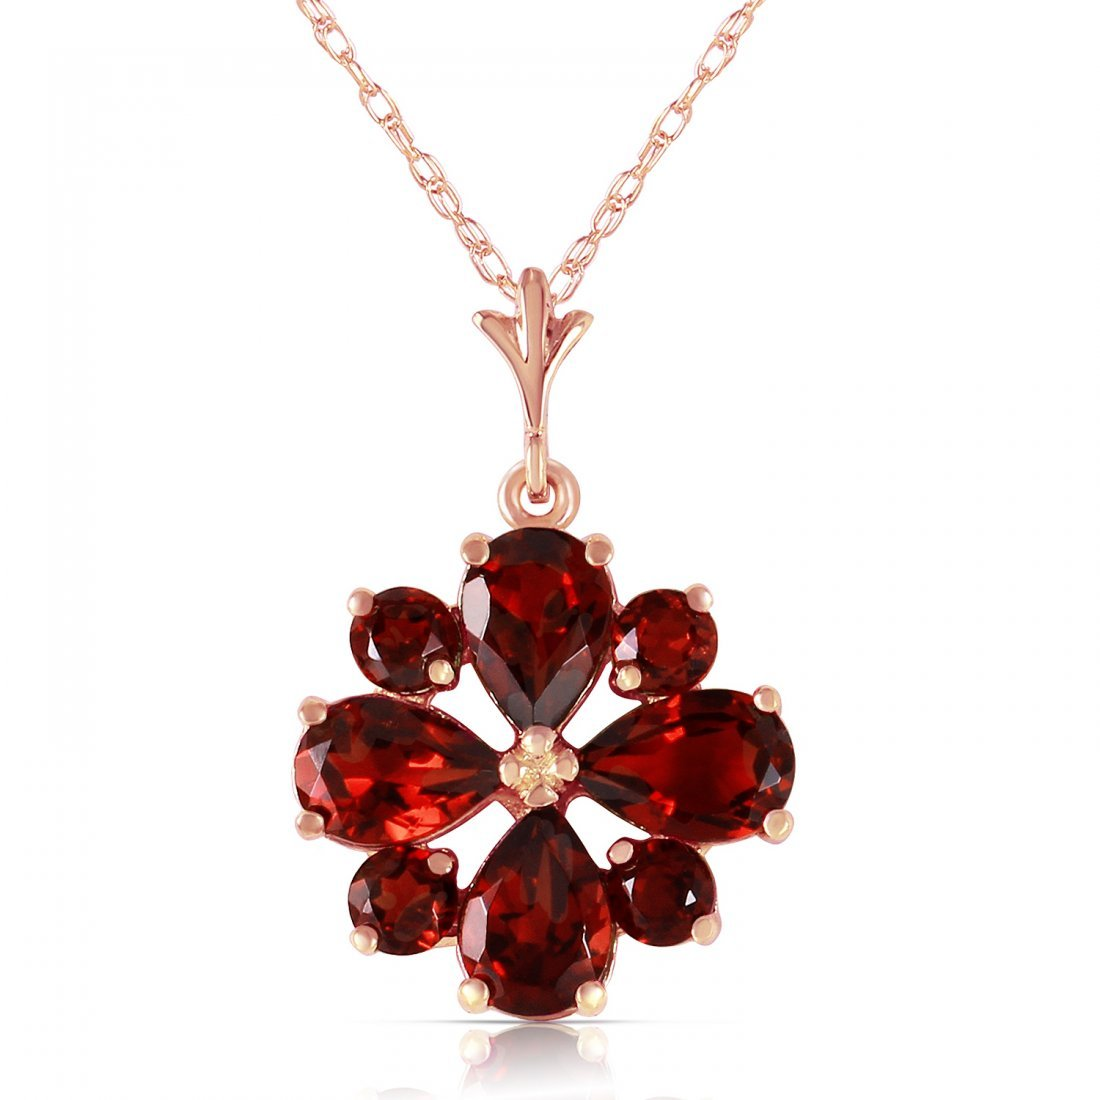 Genuine 2.43 ctw Garnet Necklace Jewelry 14KT Rose Gold